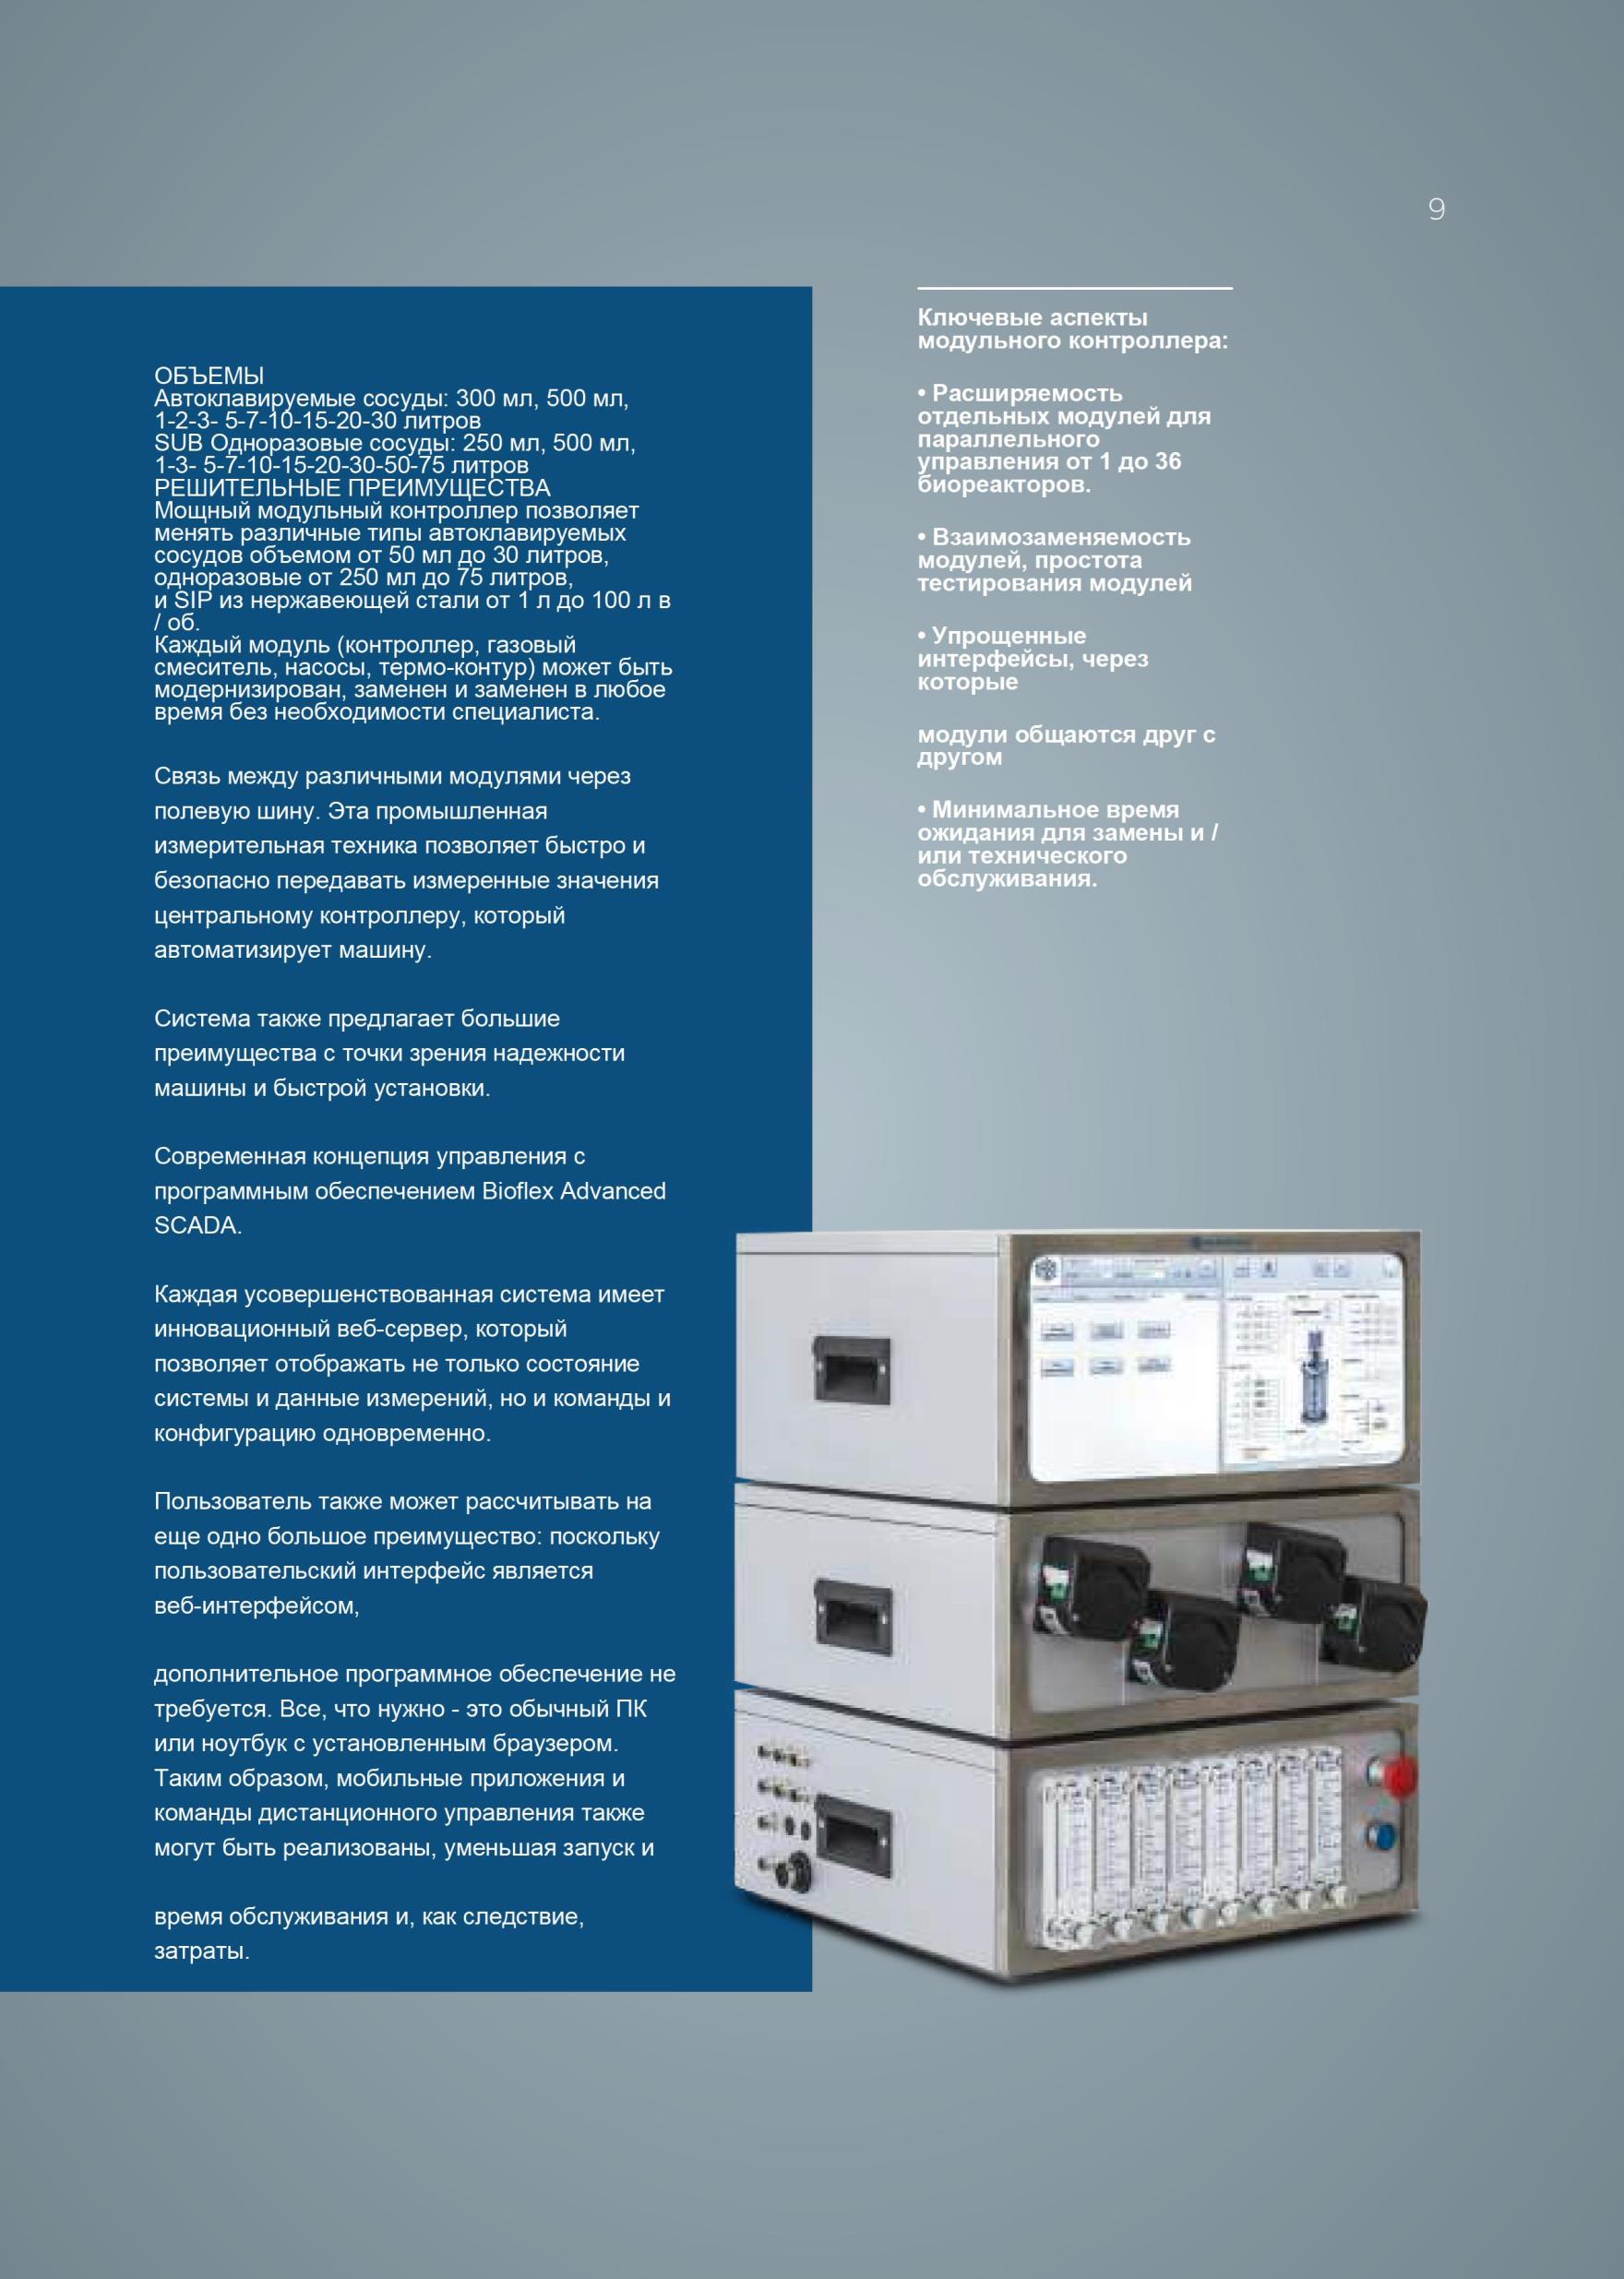 General Catalogue Solida Biotech GmBH2_compressed (2 - 0007